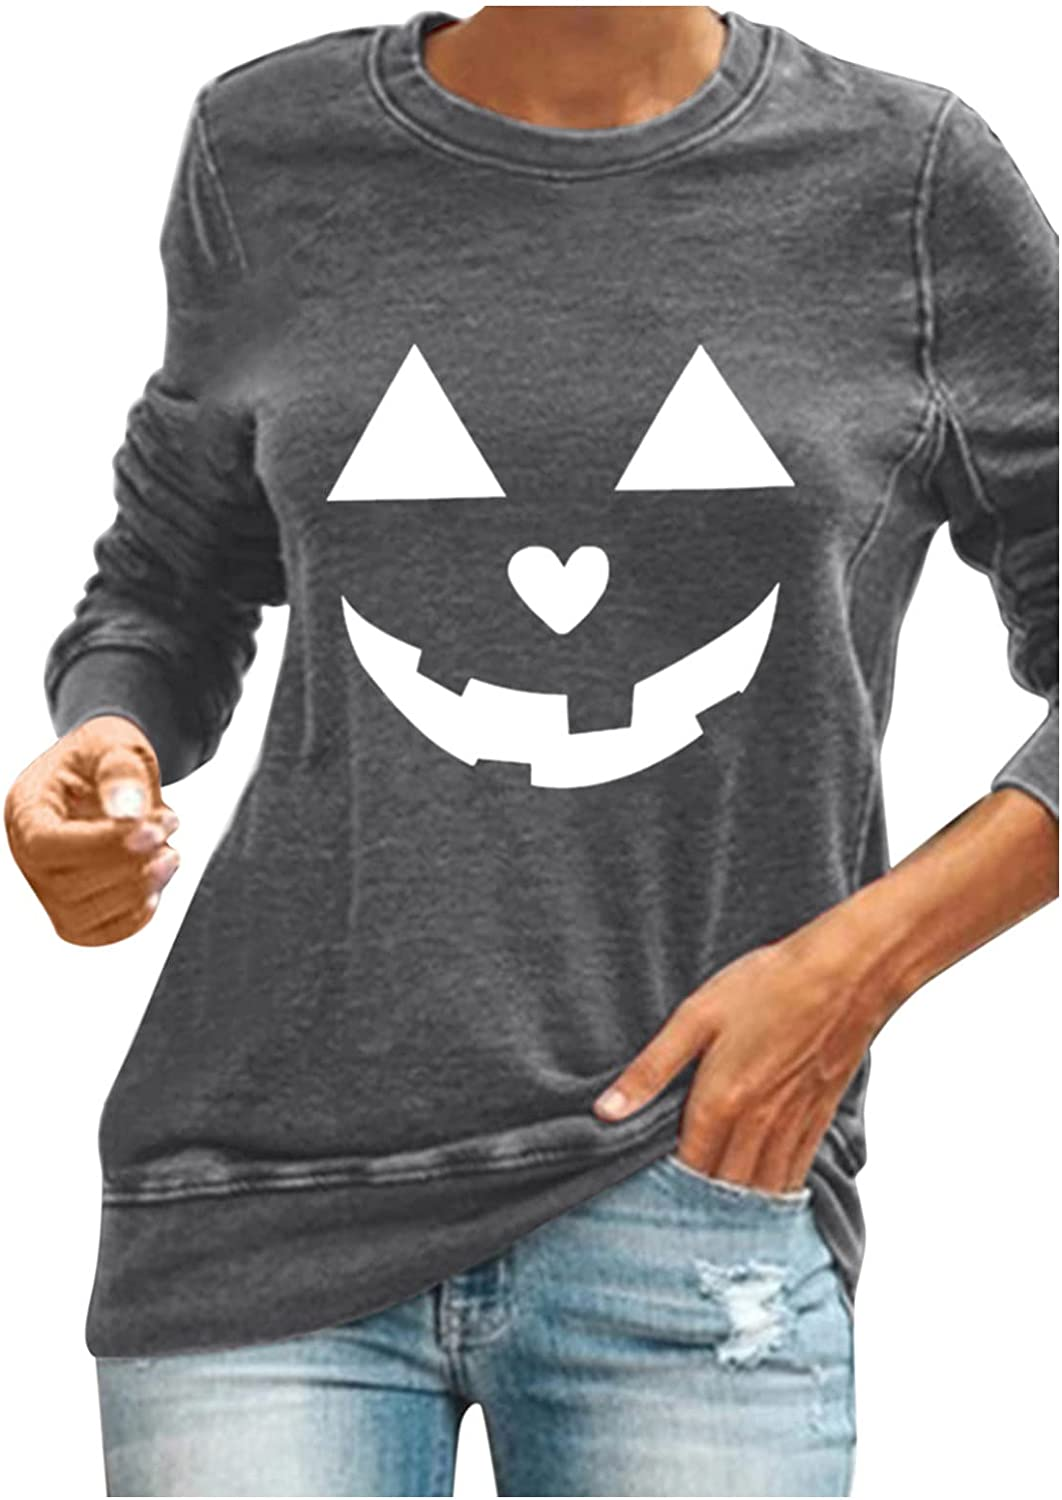 TIANMING Long Sleeve Shirts for Graphic Direct sale of manufacturer Women Halloween Very popular Crewneck